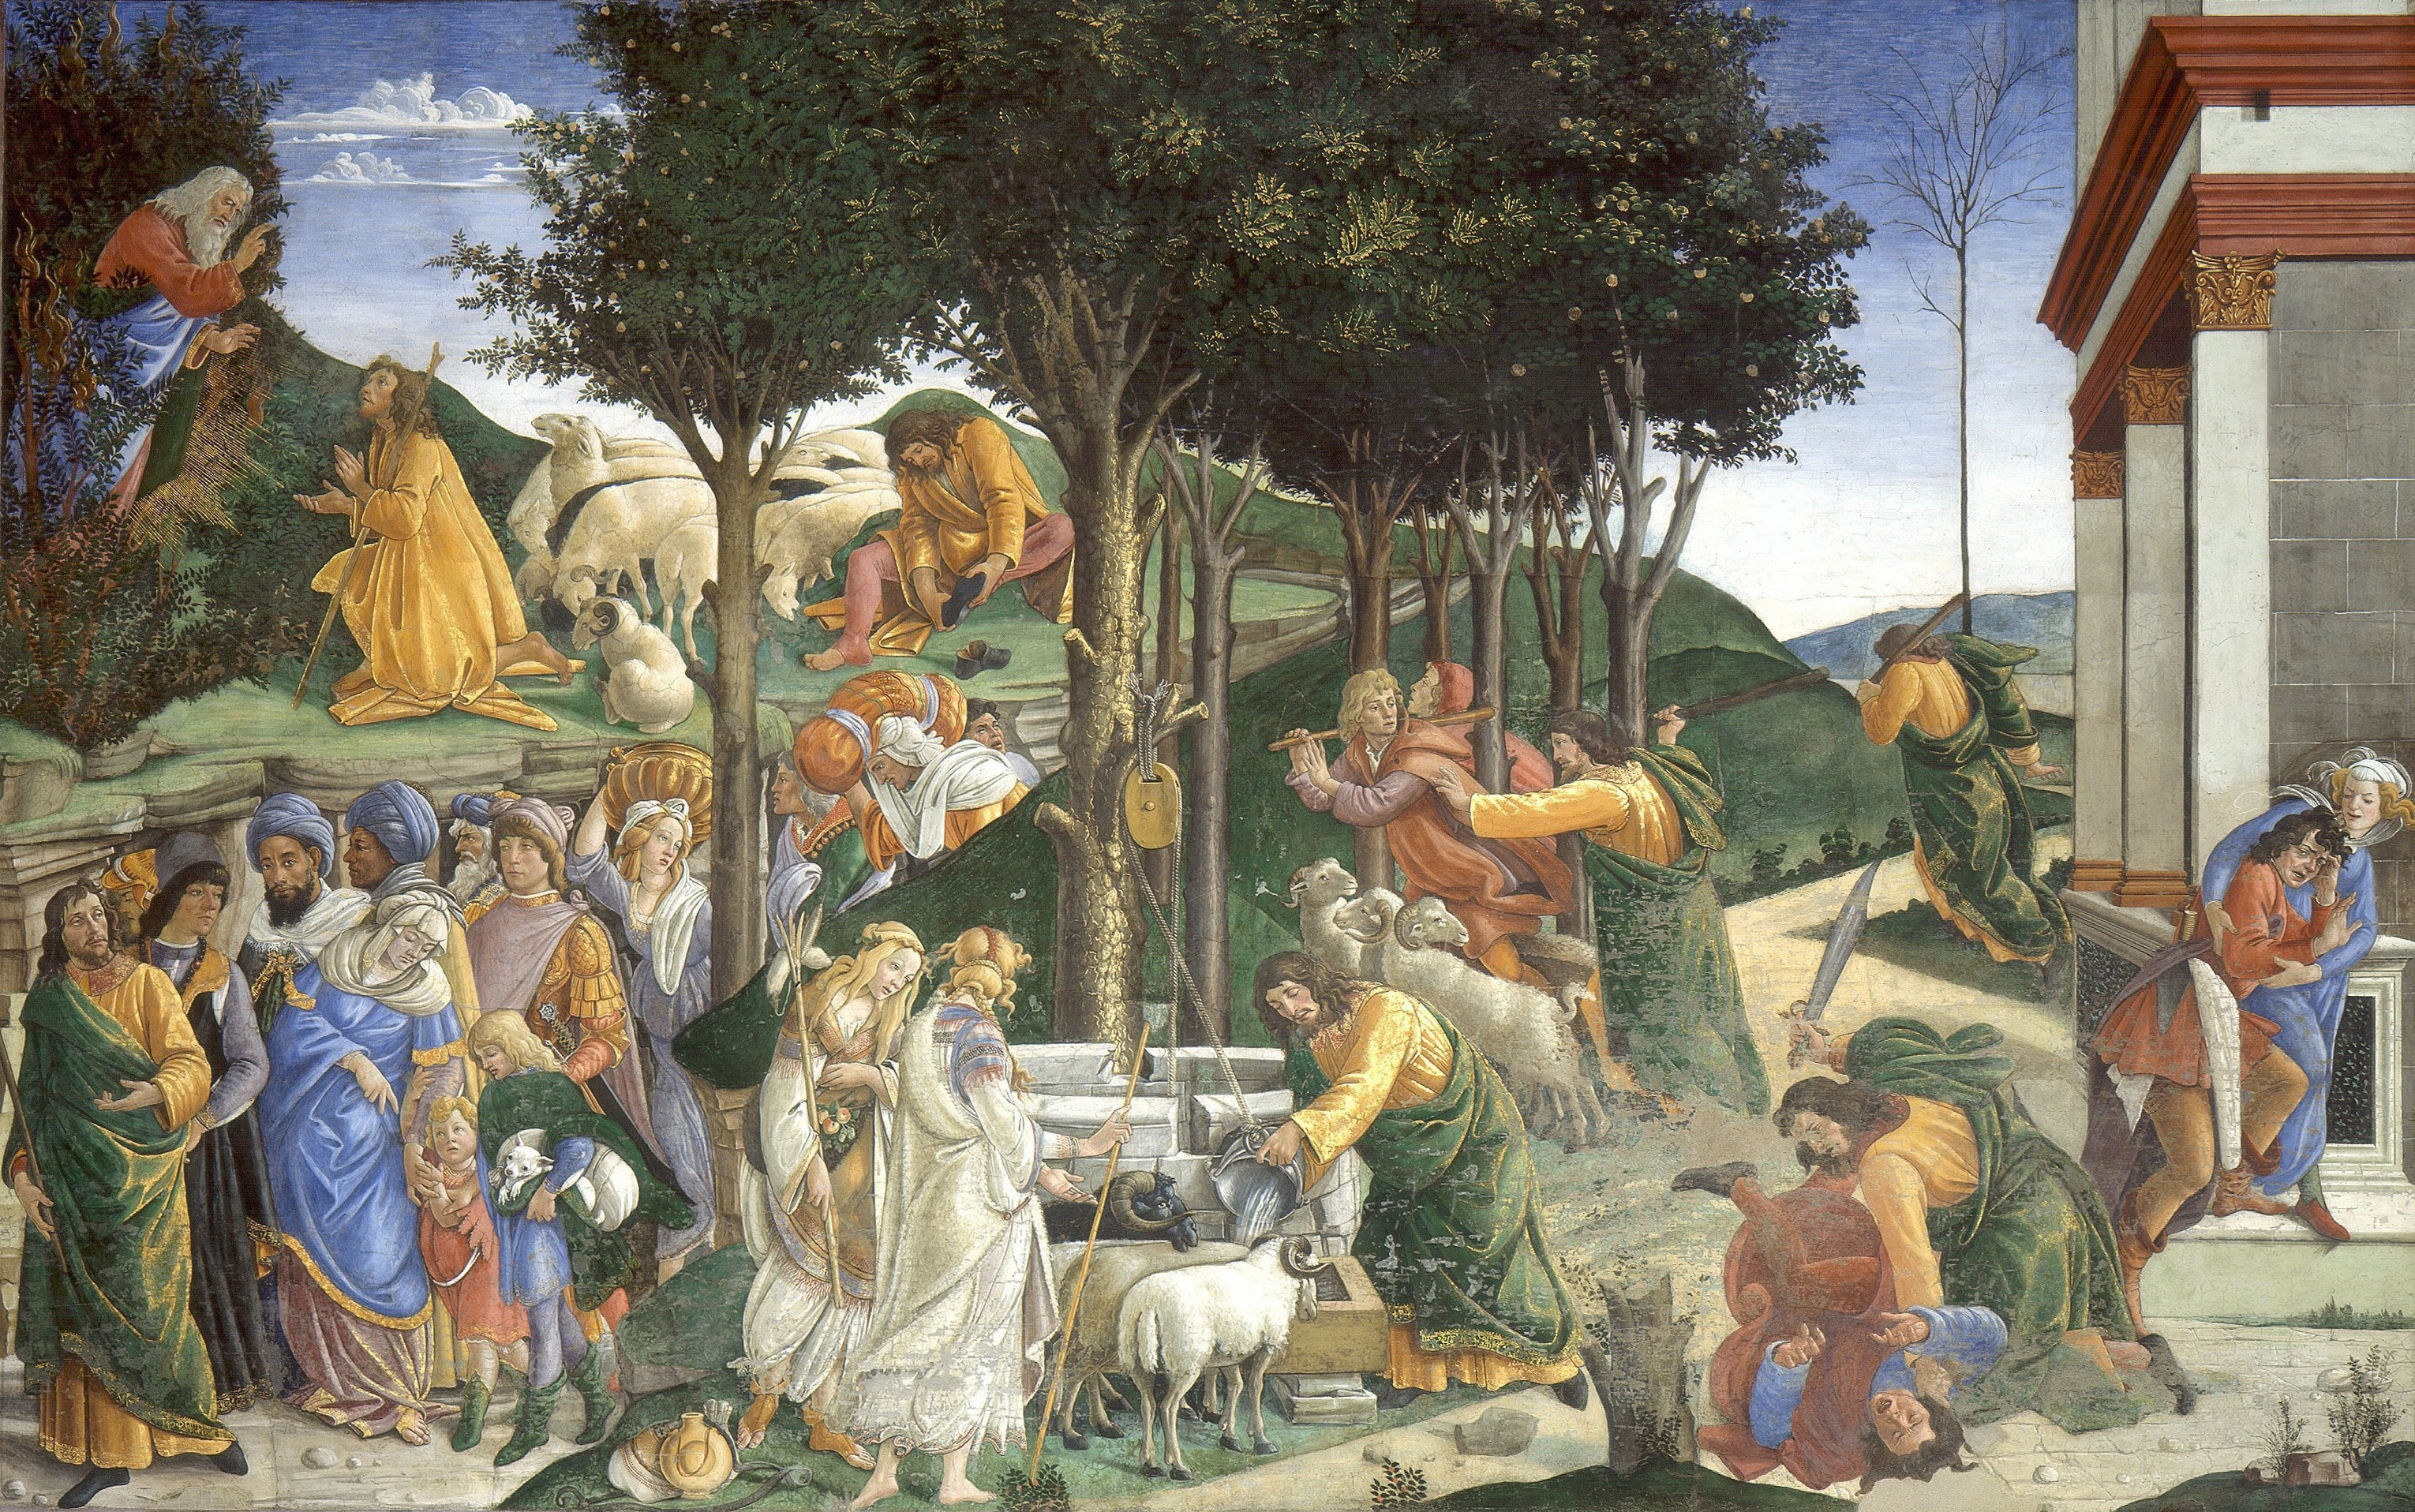 https://upload.wikimedia.org/wikipedia/commons/7/77/Eventos_de_la_vida_de_Mois%C3%A9s_%28Sandro_Botticelli%29.jpg